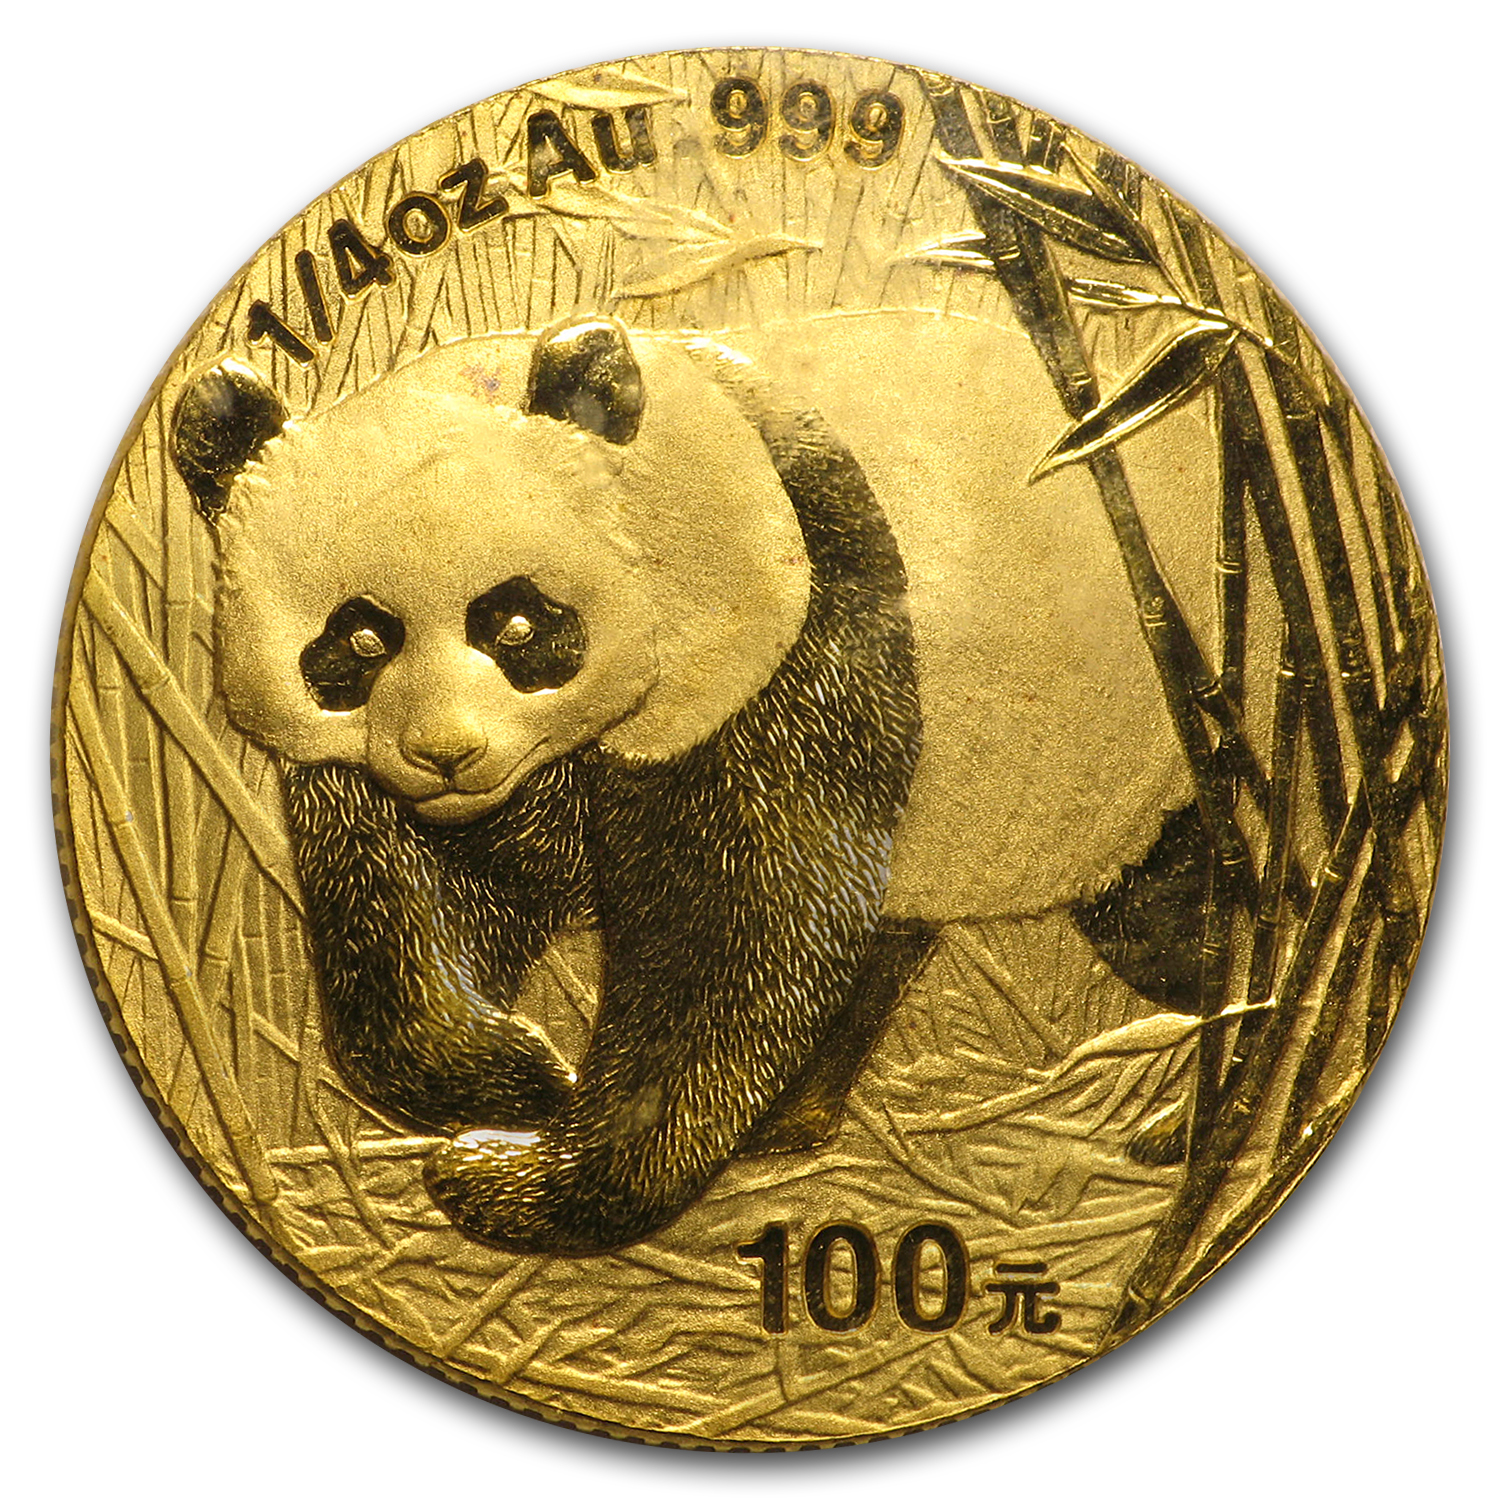 2001 China 1/4 oz Gold Panda BU (Sealed)